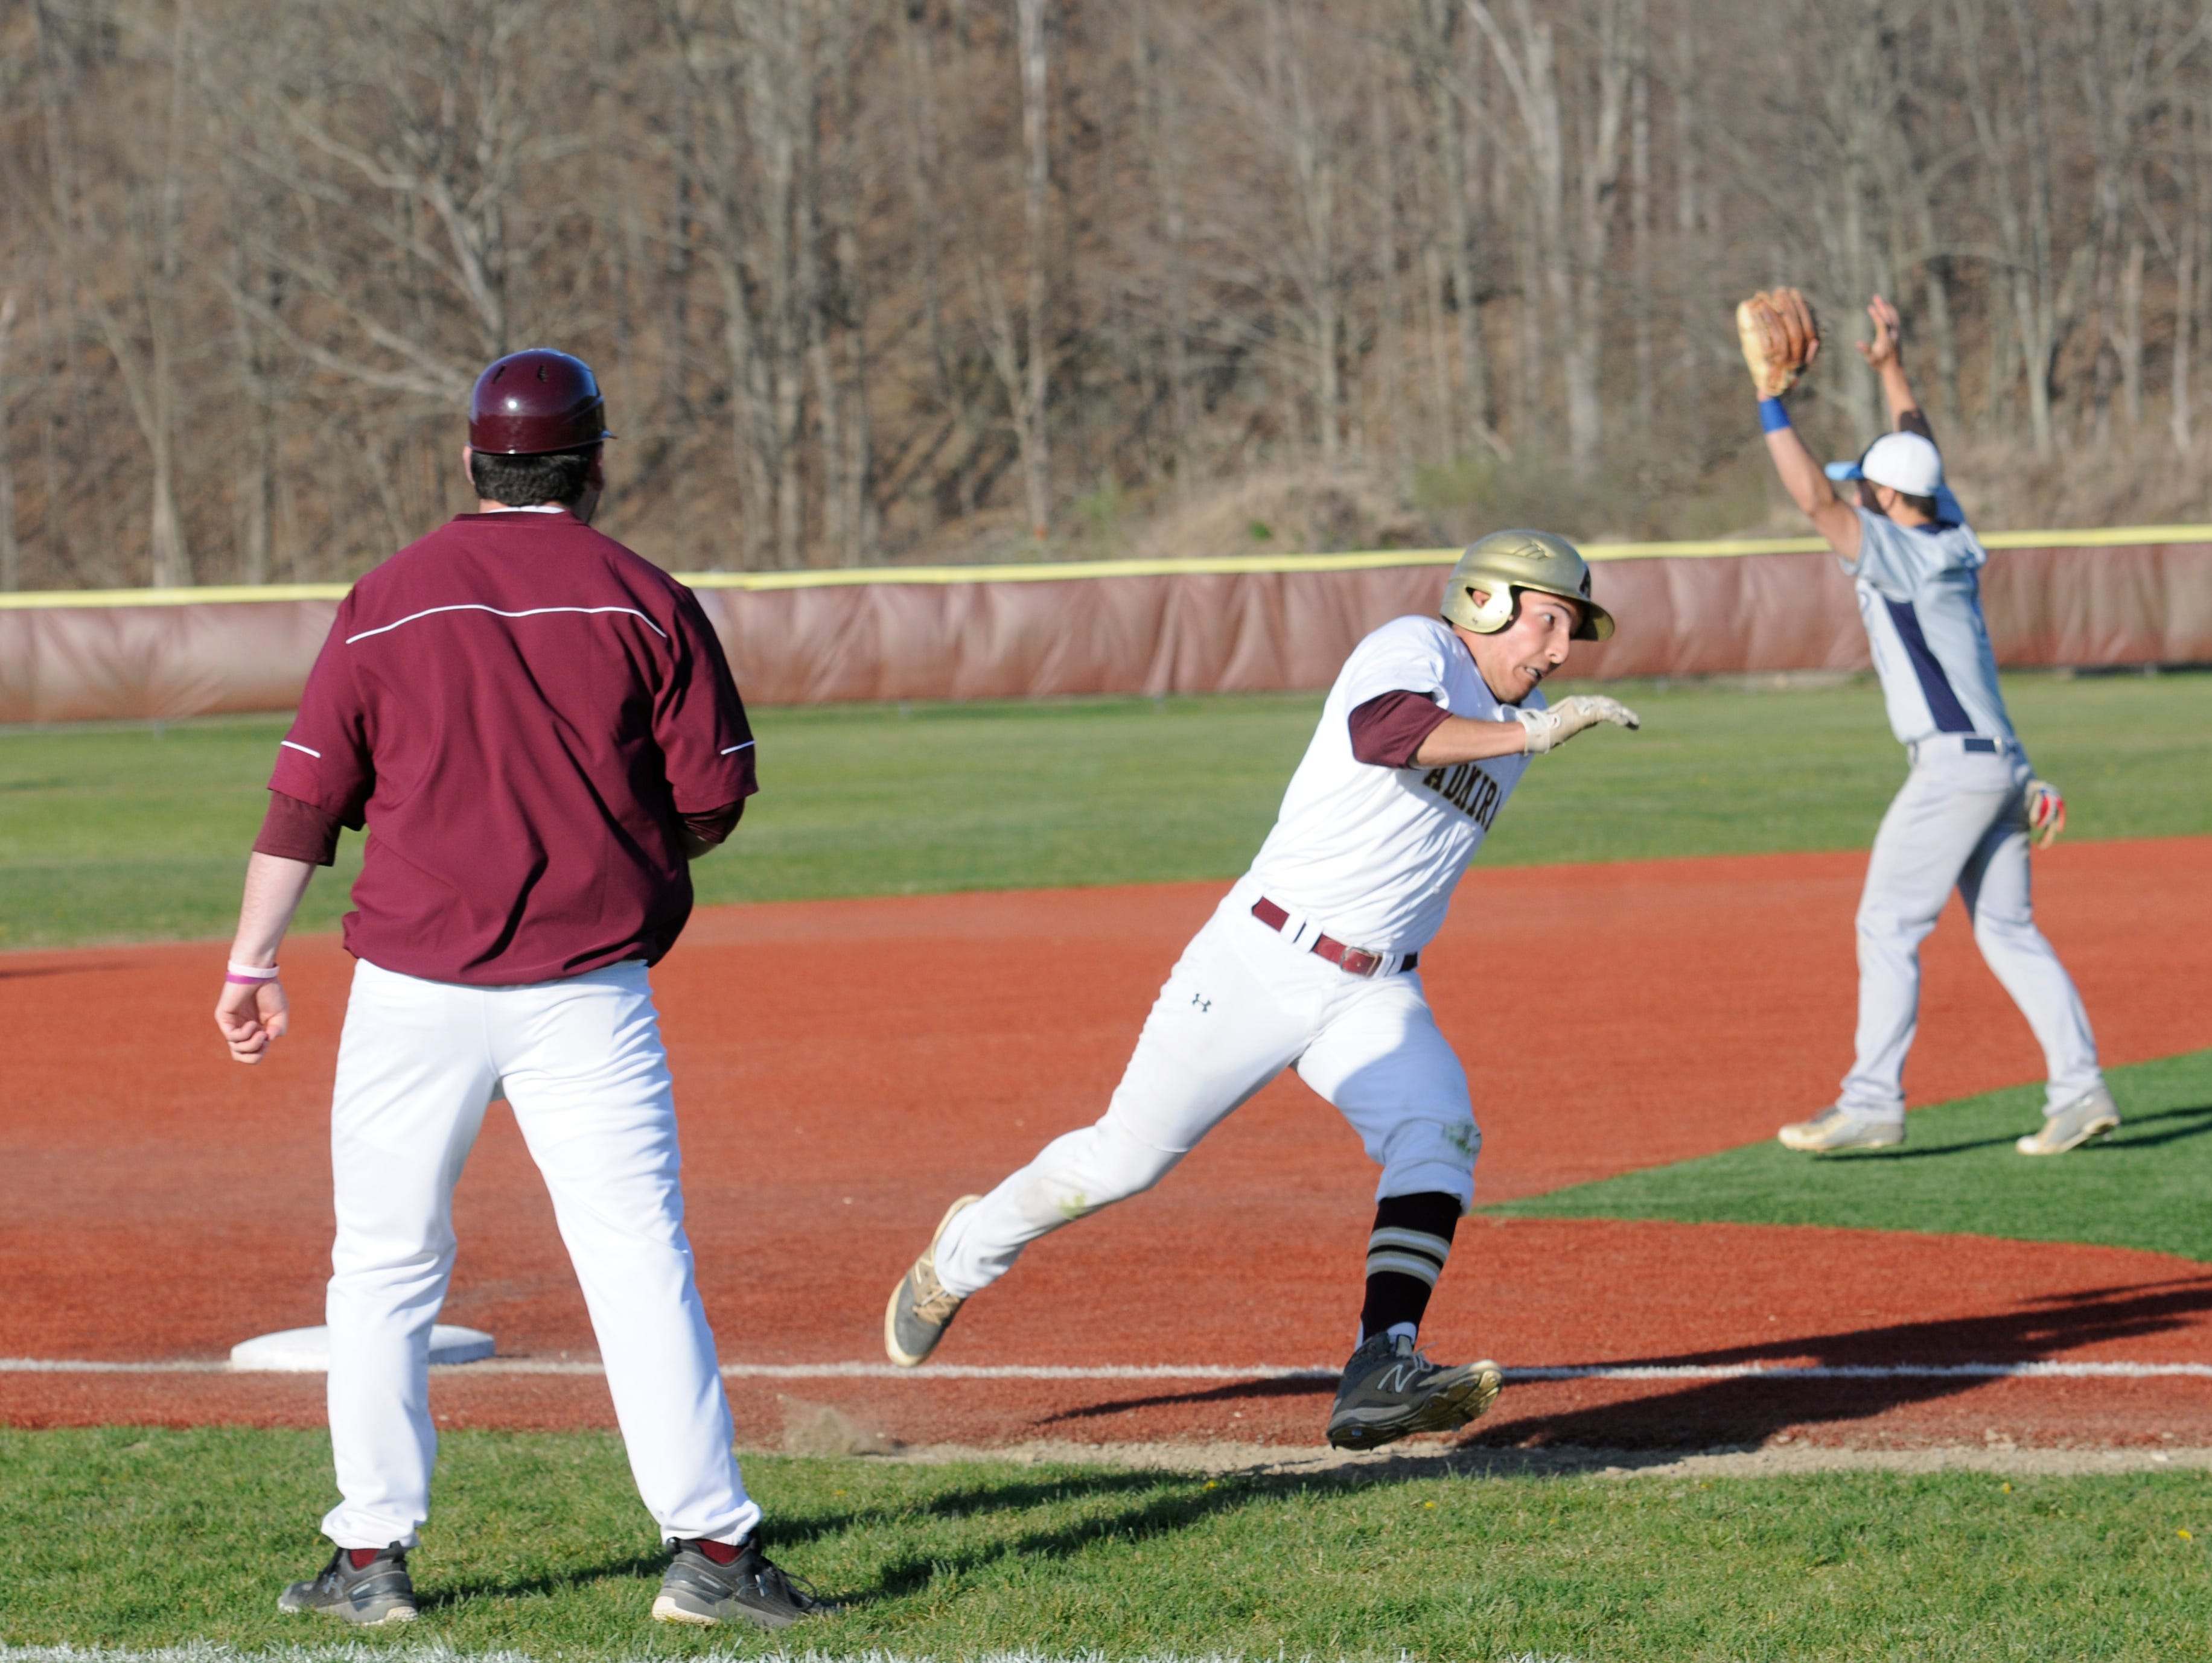 Arlington's Connor Chiulli rounds third base from a single hit by Simon Alvarez to make it home during Tuesday's home game versus John Jay.